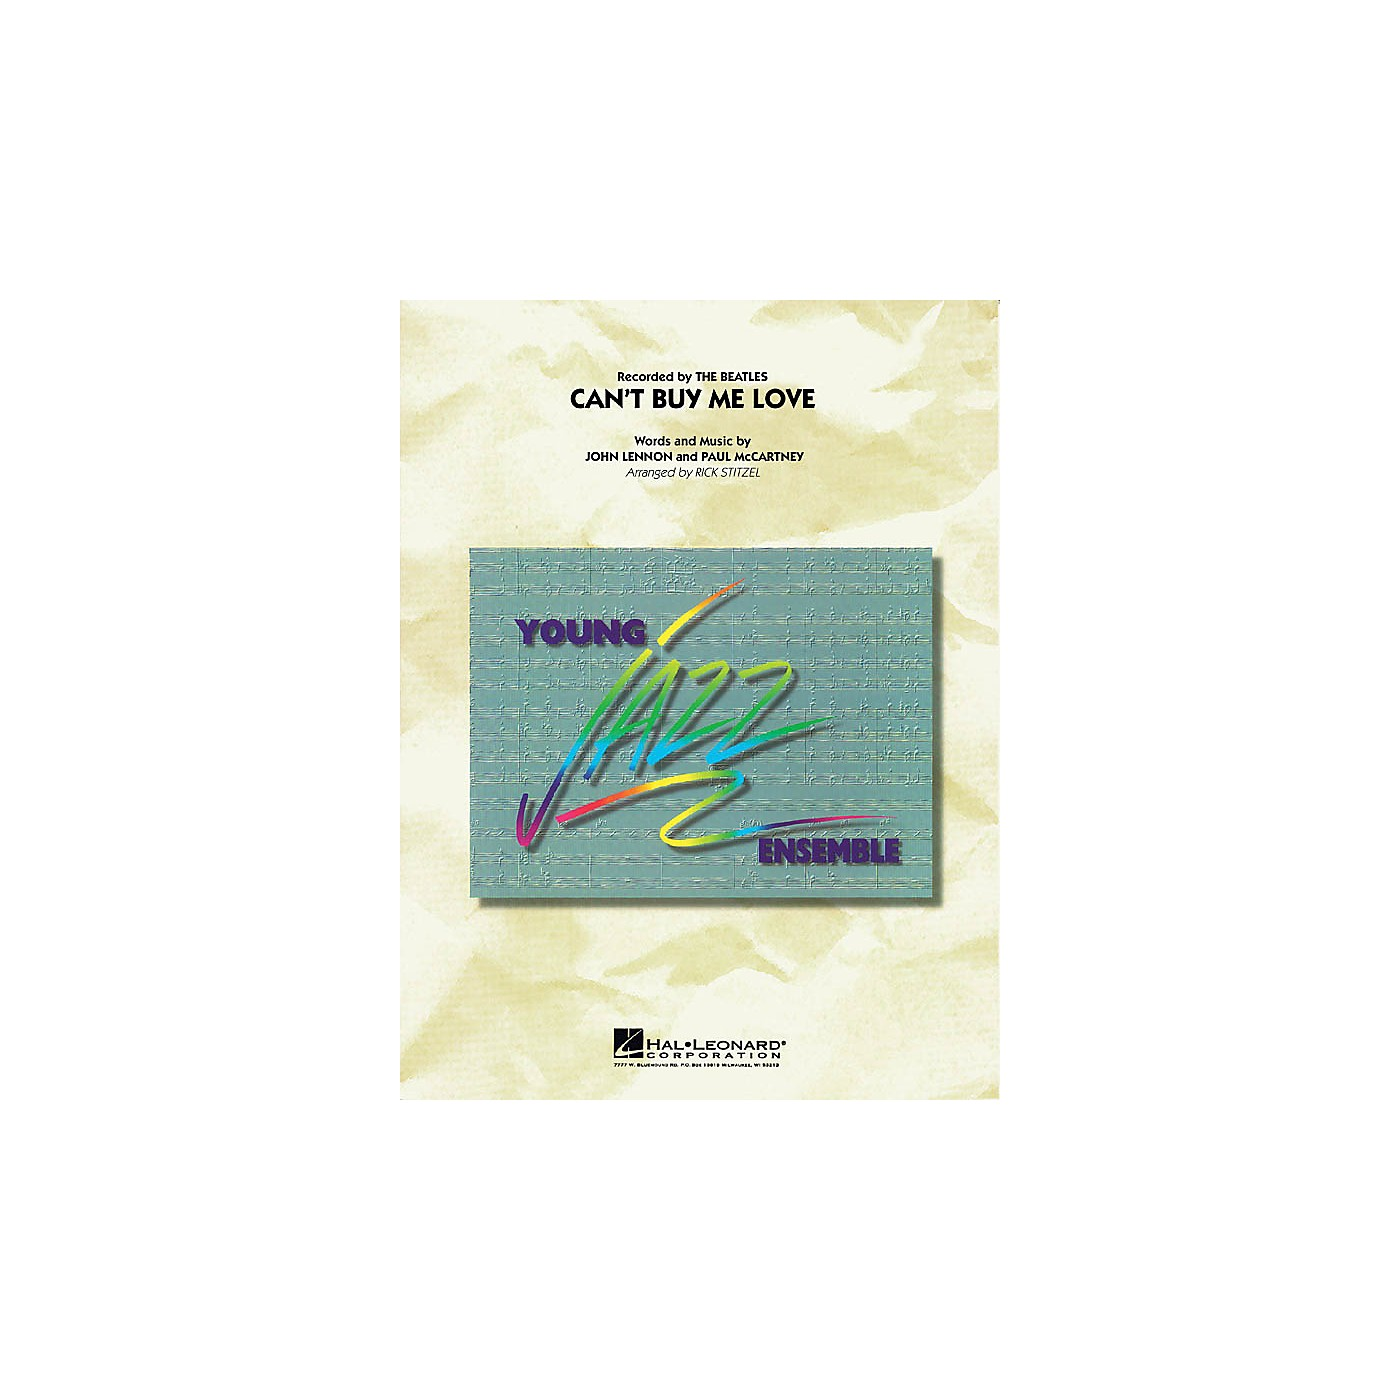 Hal Leonard Can't Buy Me Love Jazz Band Level 3 by The Beatles Arranged by Rick Stitzel thumbnail